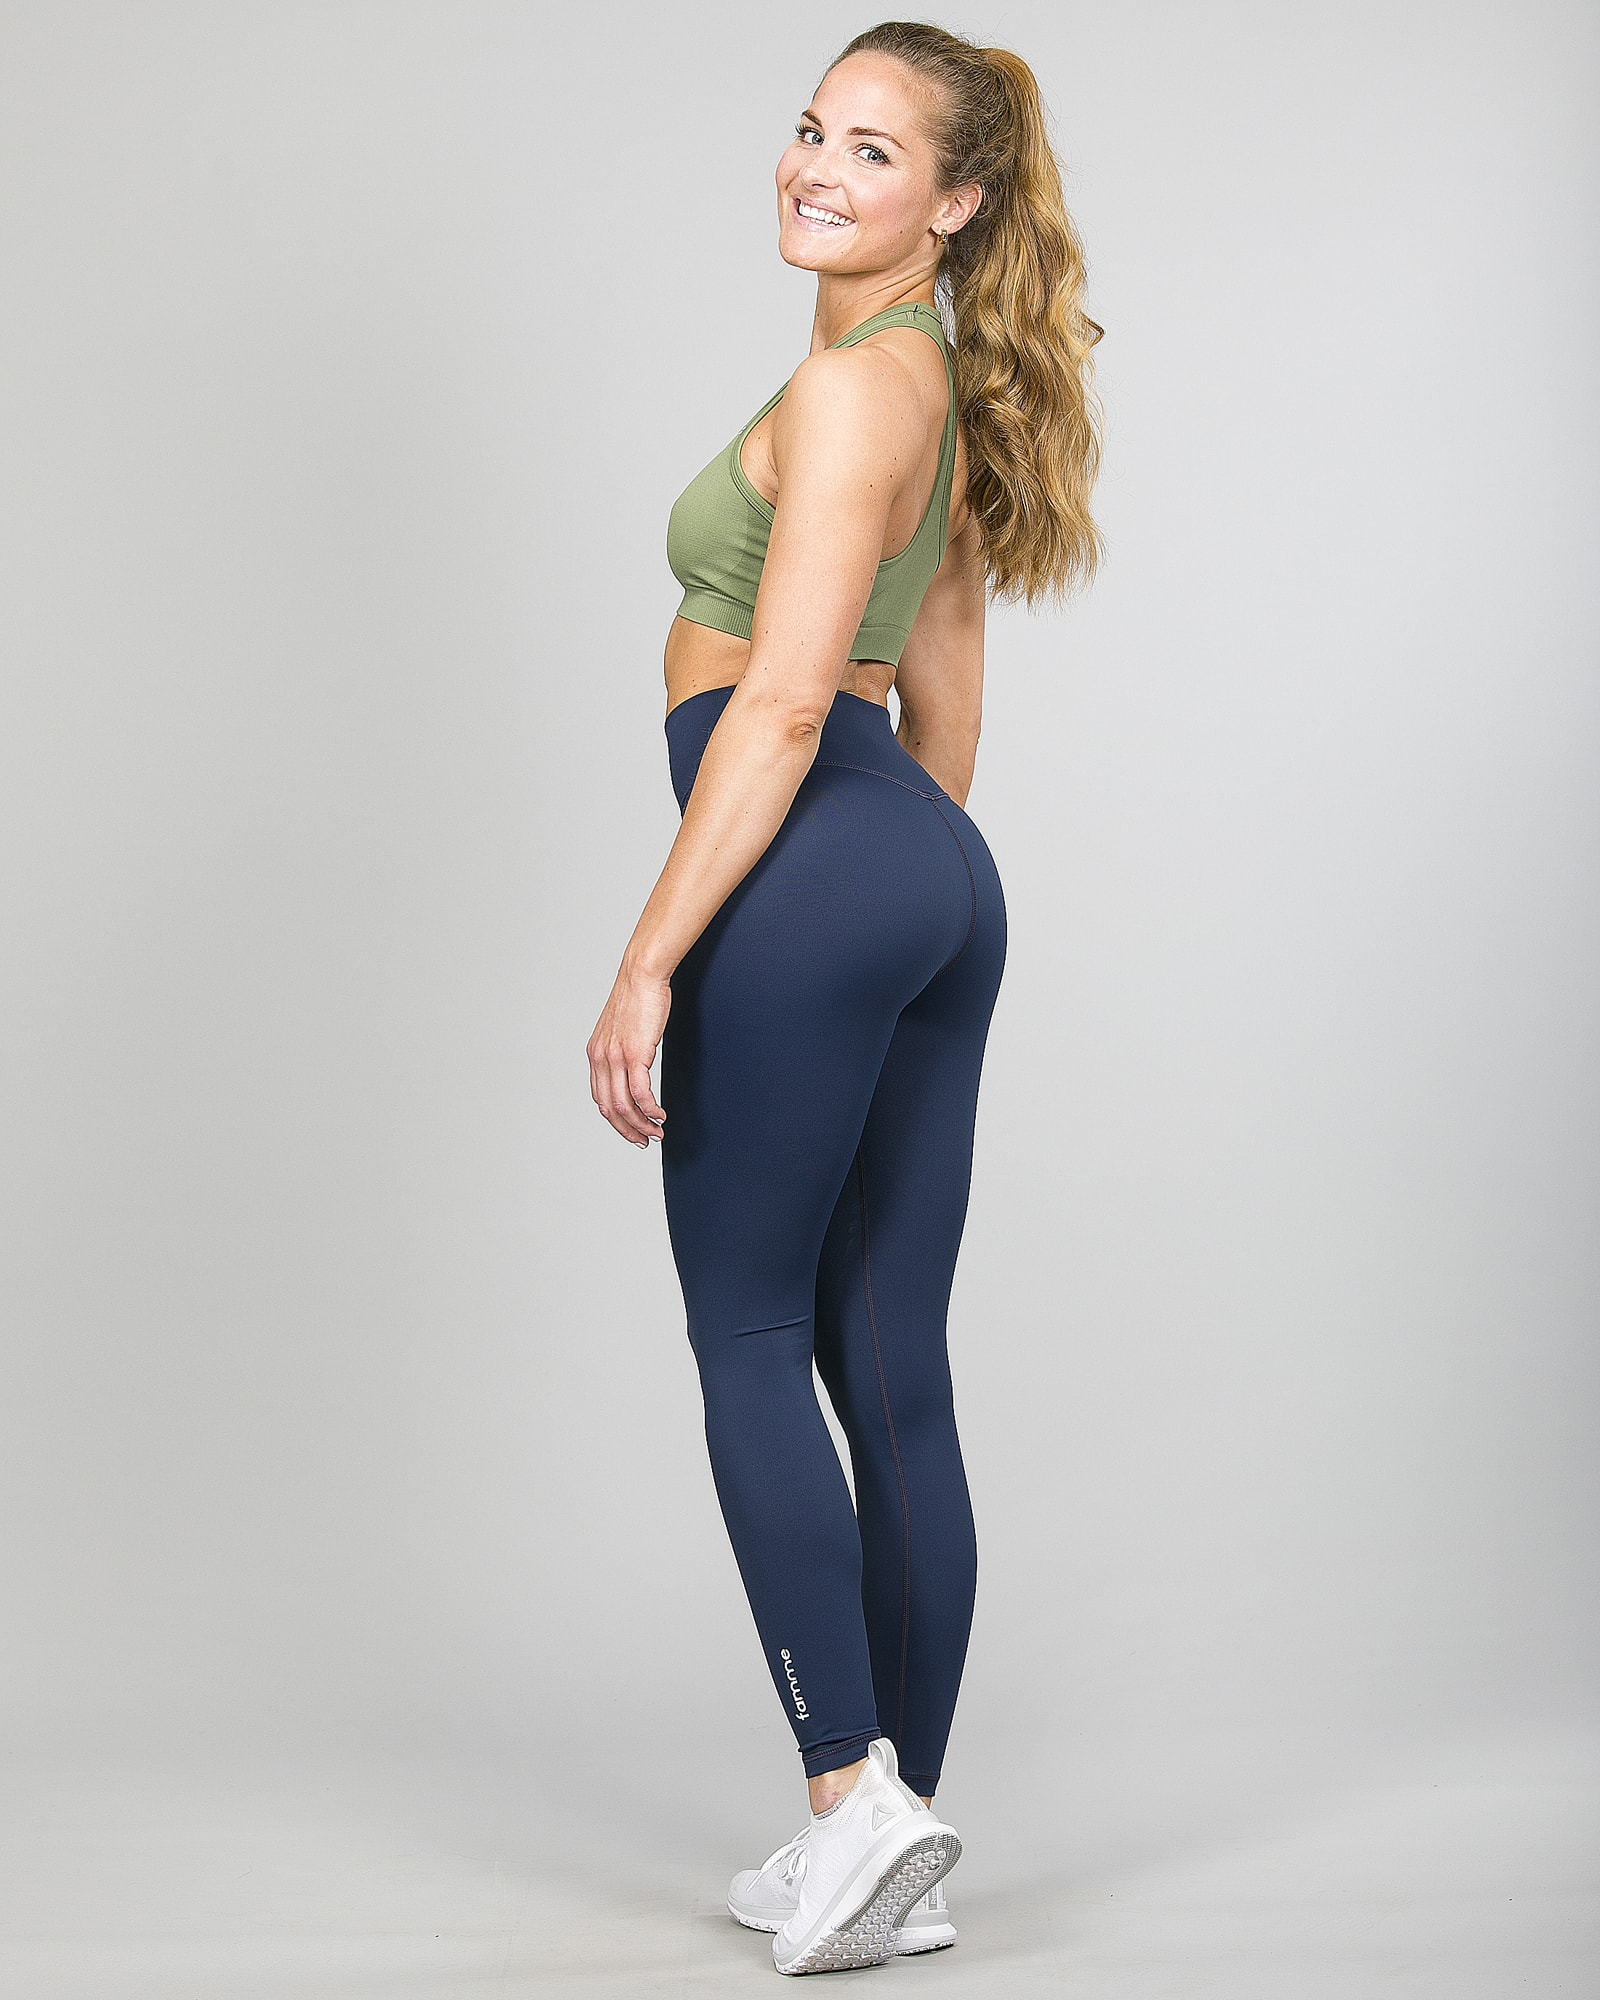 Famme Essential High Waist Legging - Midnight Blue ehwt-mb and Drop It Sports Bra Army Green vhwl-ag f